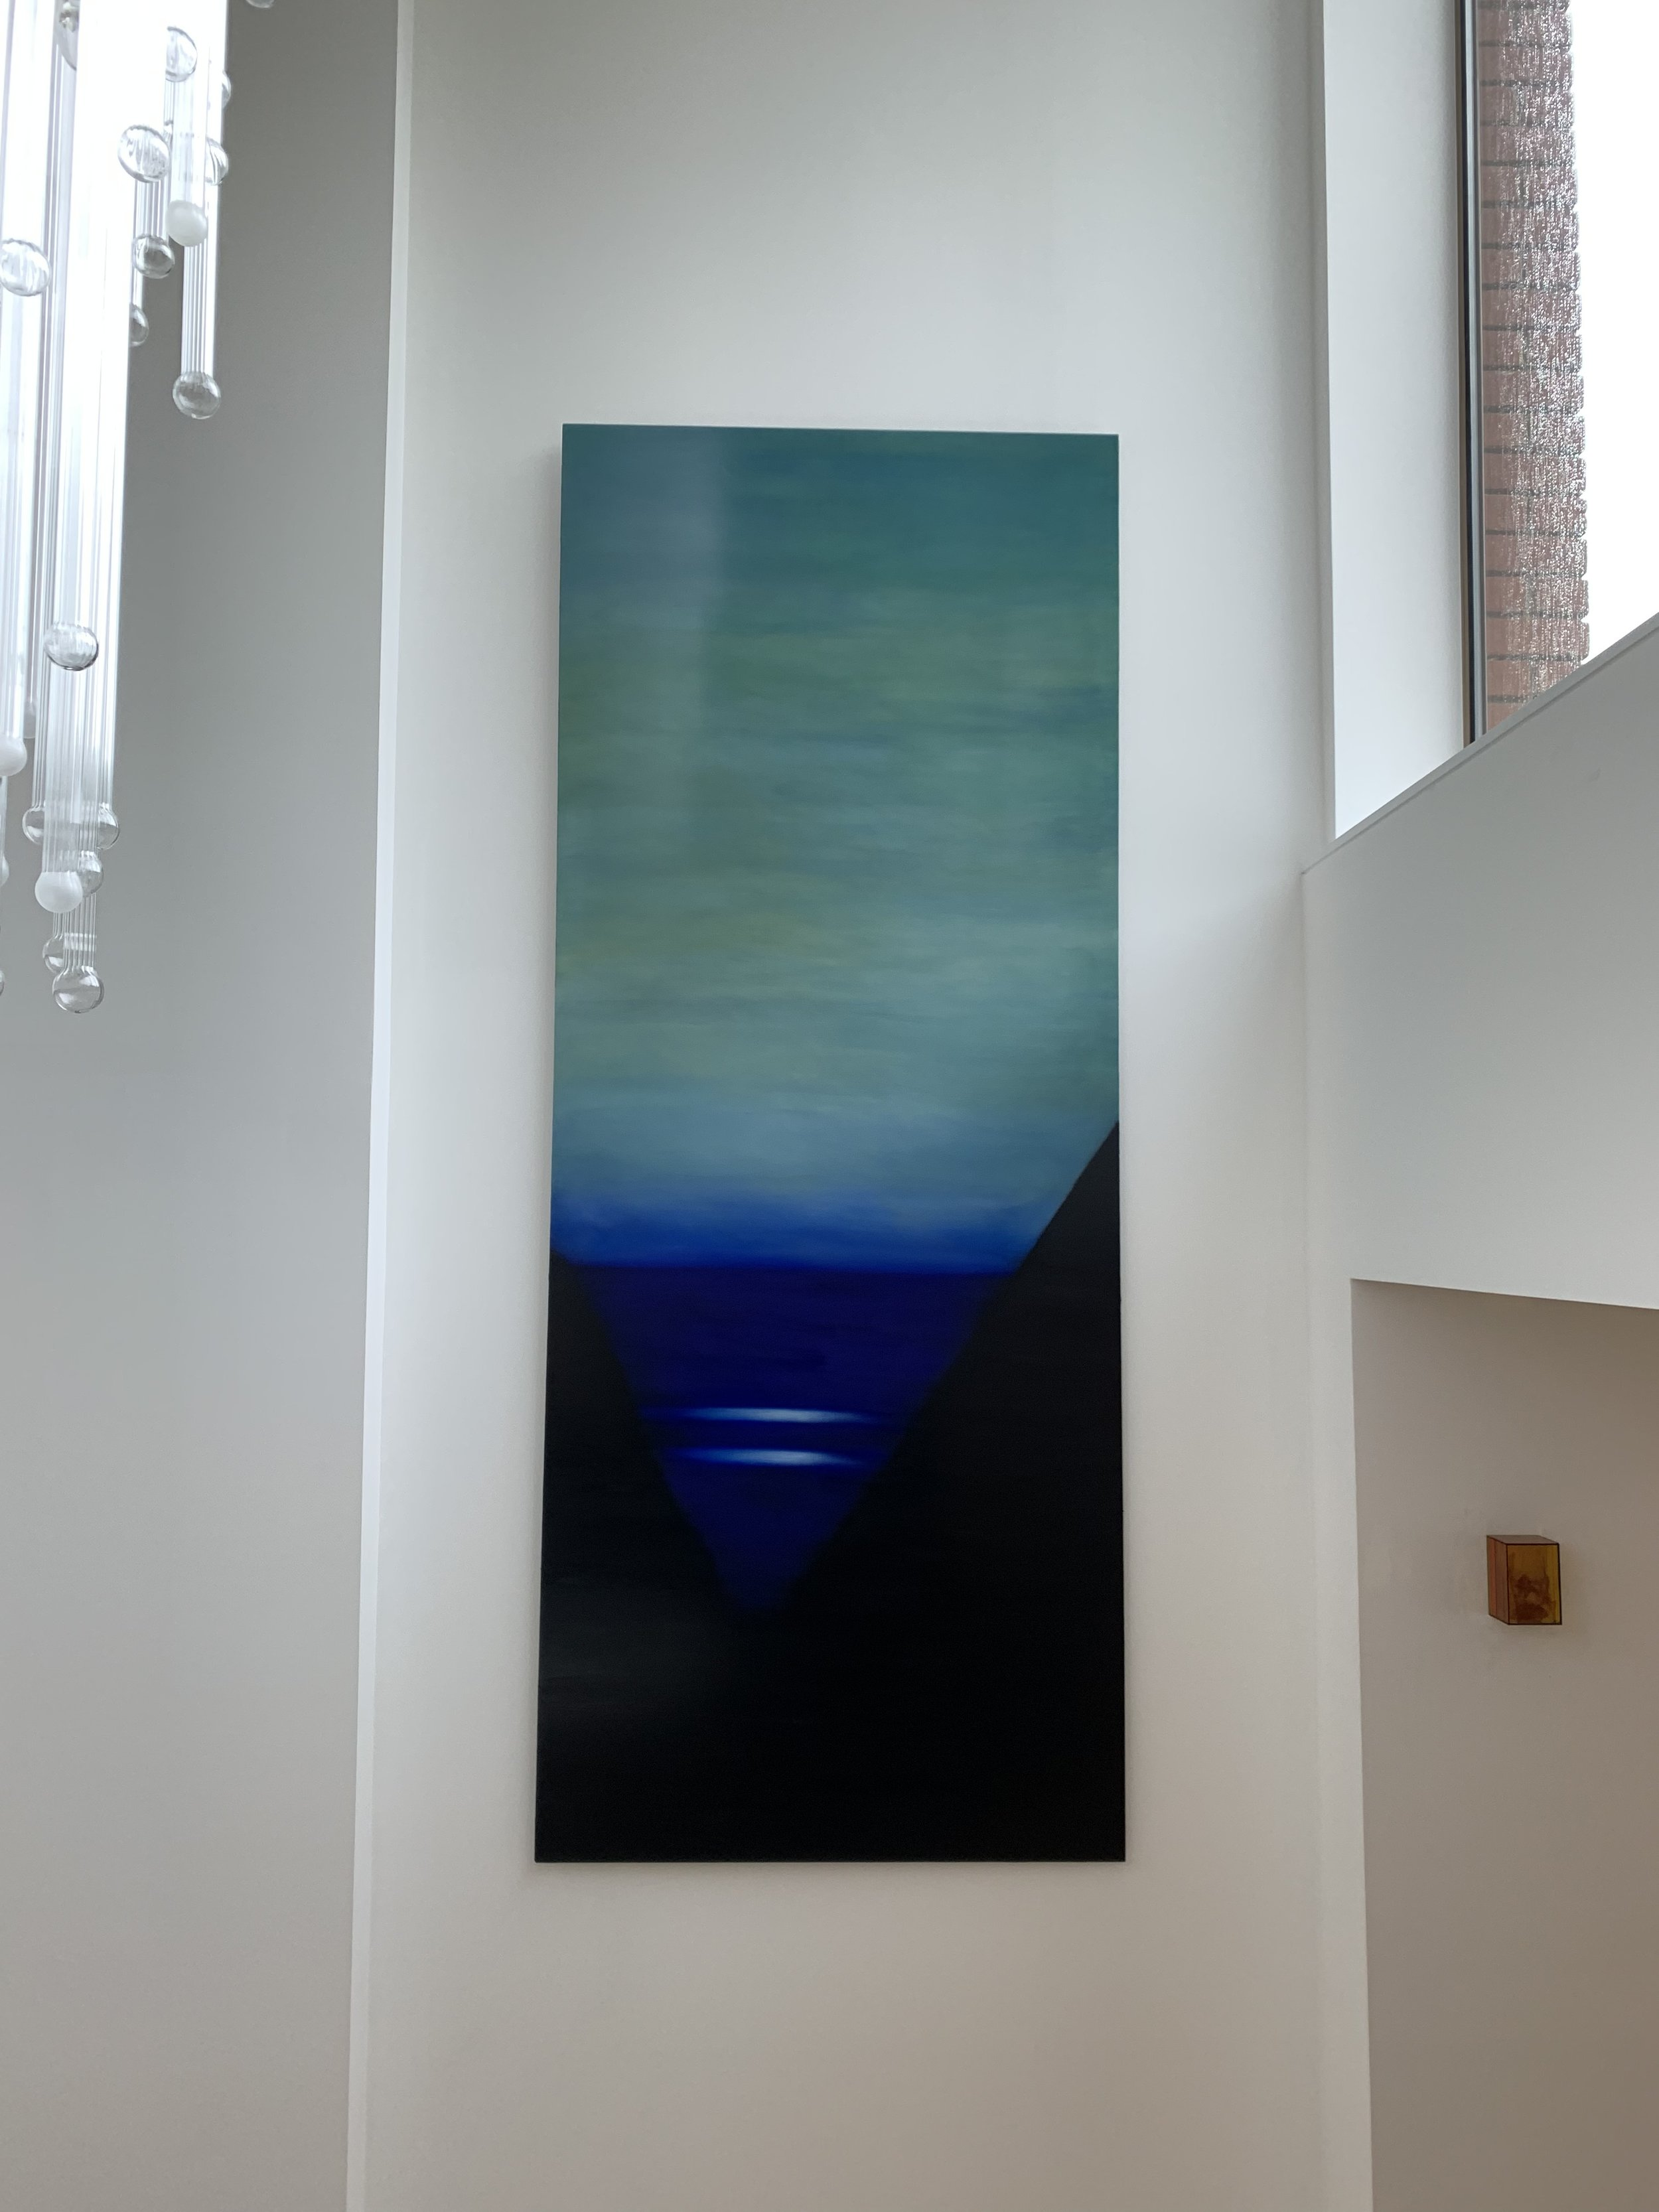 Lightscape commission in a clients home In north London, England, 2019  250 x 80 cm  Oil on Aluminium